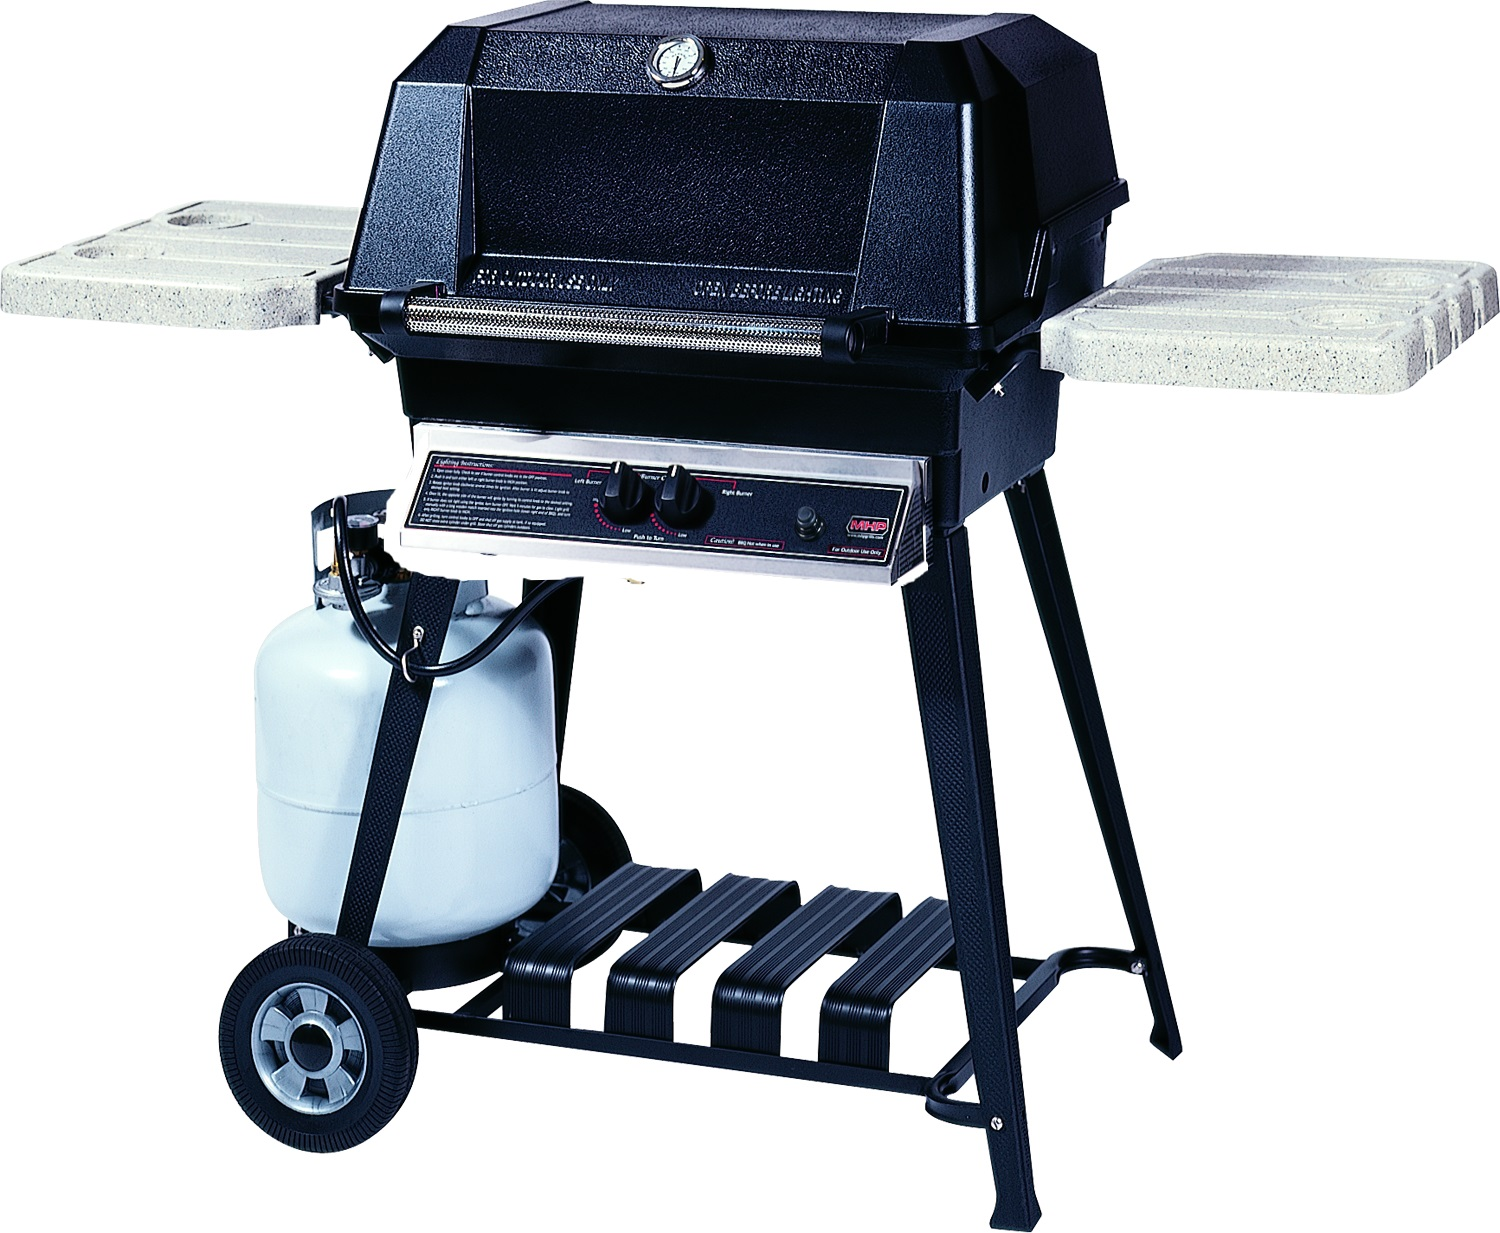 Mhp Gas Grills Wnk4 Natural Gas Grill W// Stainless Grids On Stainless Cart